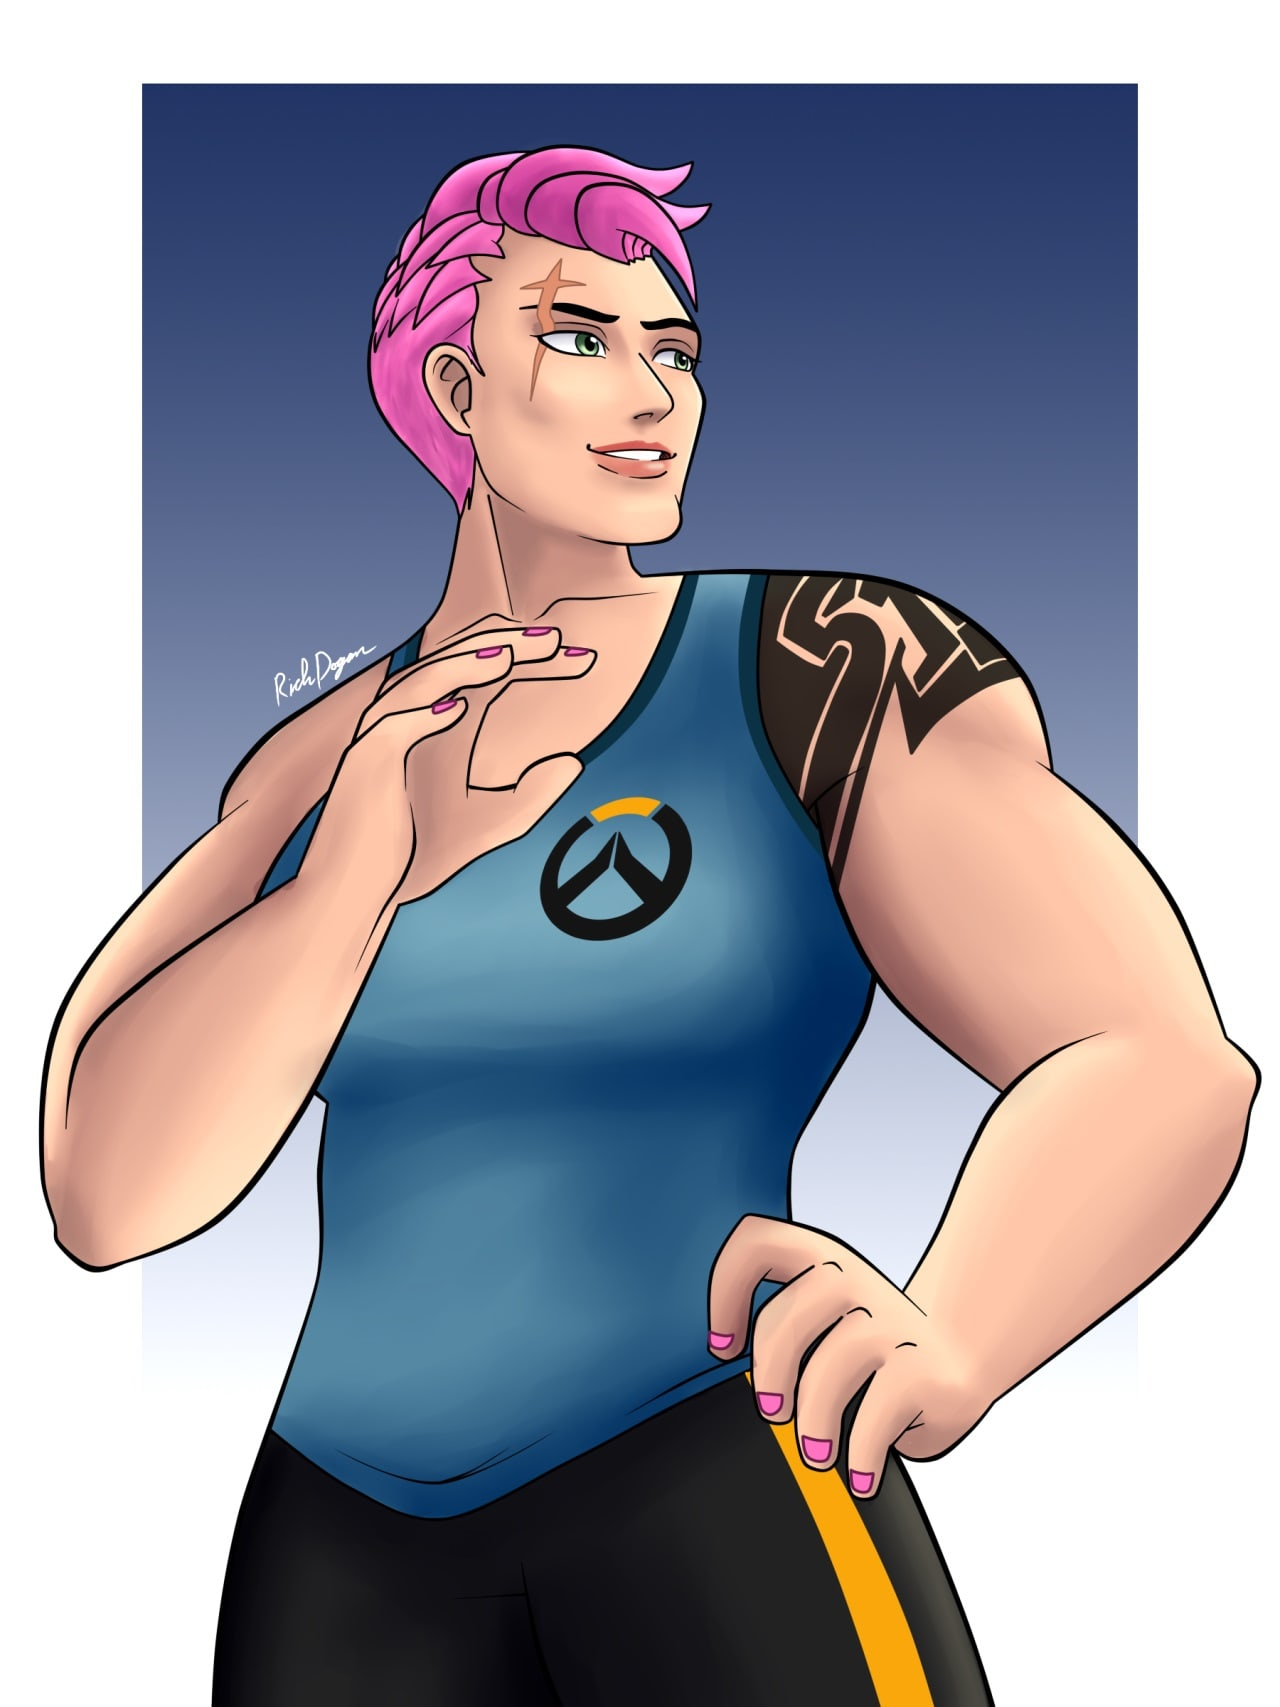 Overwatch : Zarya For mobile